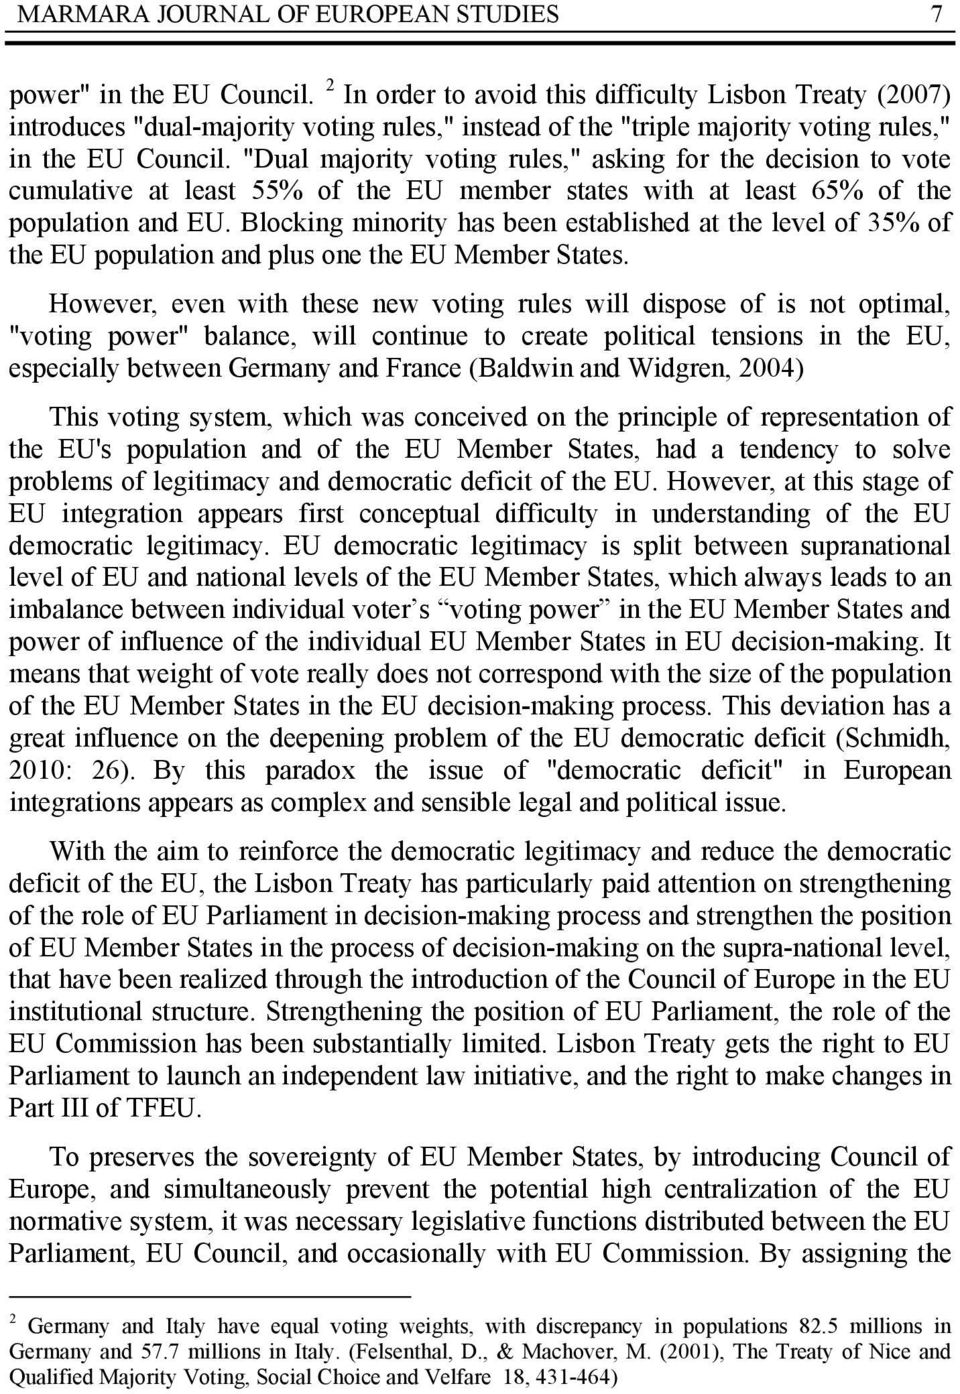 """Dual majority voting rules,"" asking for the decision to vote cumulative at least 55% of the EU member states with at least 65% of the population and EU."